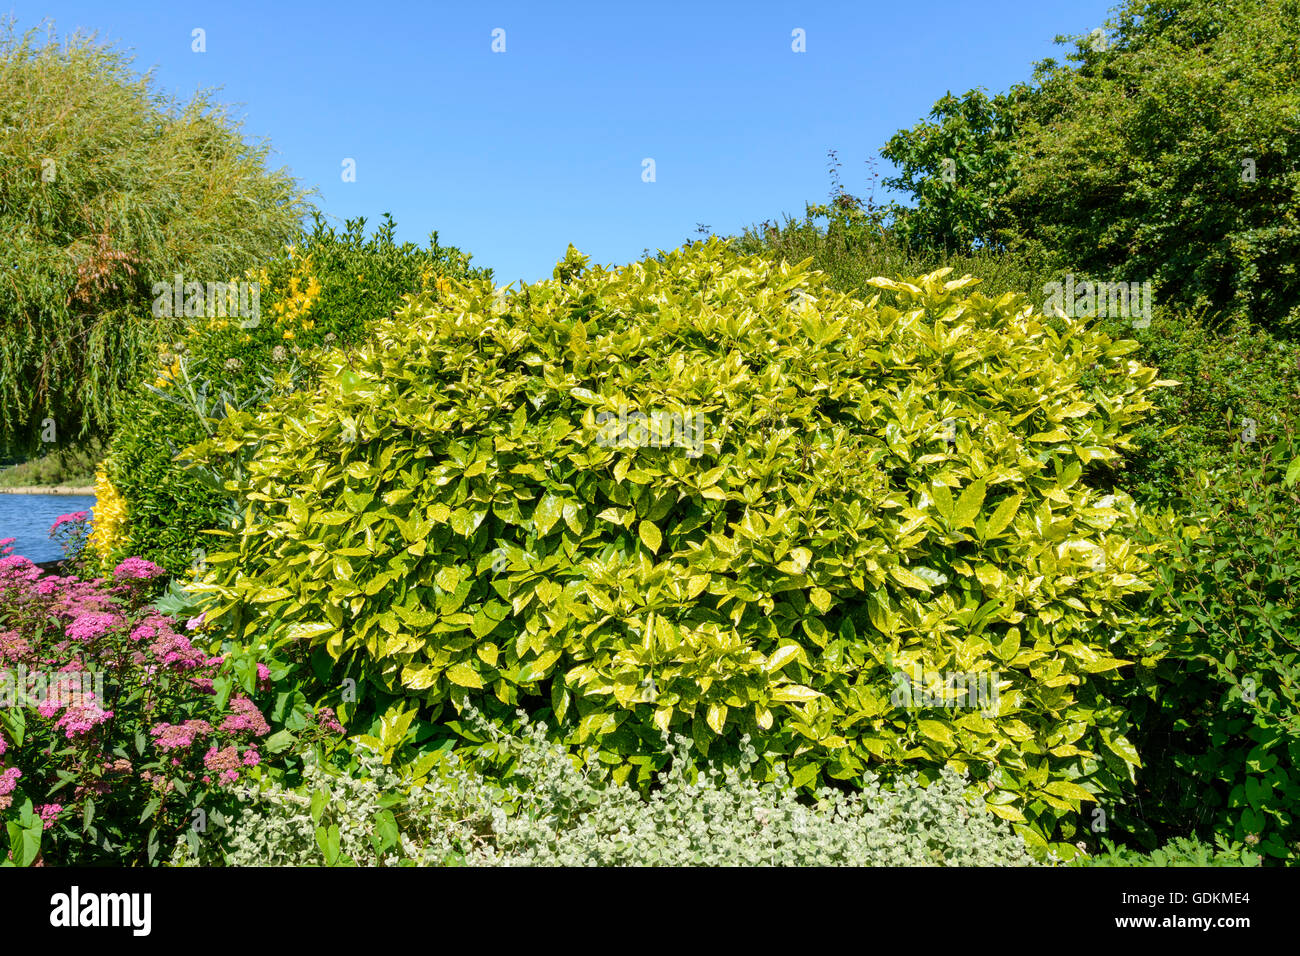 Japanese Laurel (Aucuba japonica) bush growing in a park in Summer in the UK. - Stock Image